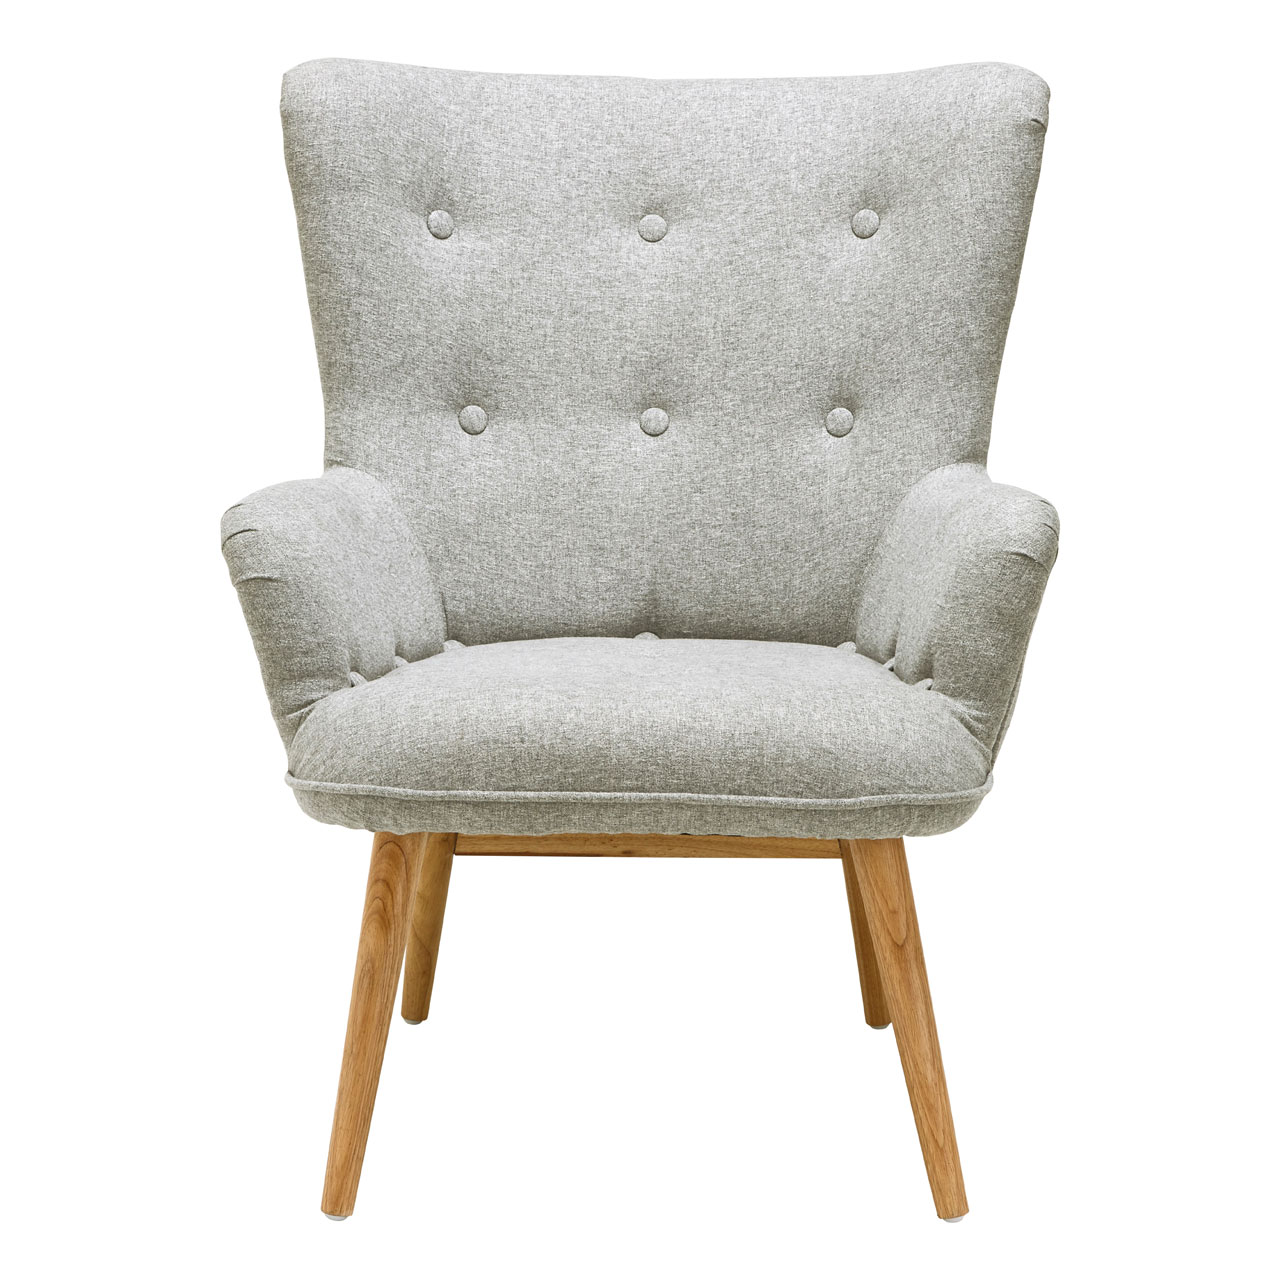 Details About Bergen Armchair Grey Polyester Natural Wood Legs Sofa Lounge Chair Furniture